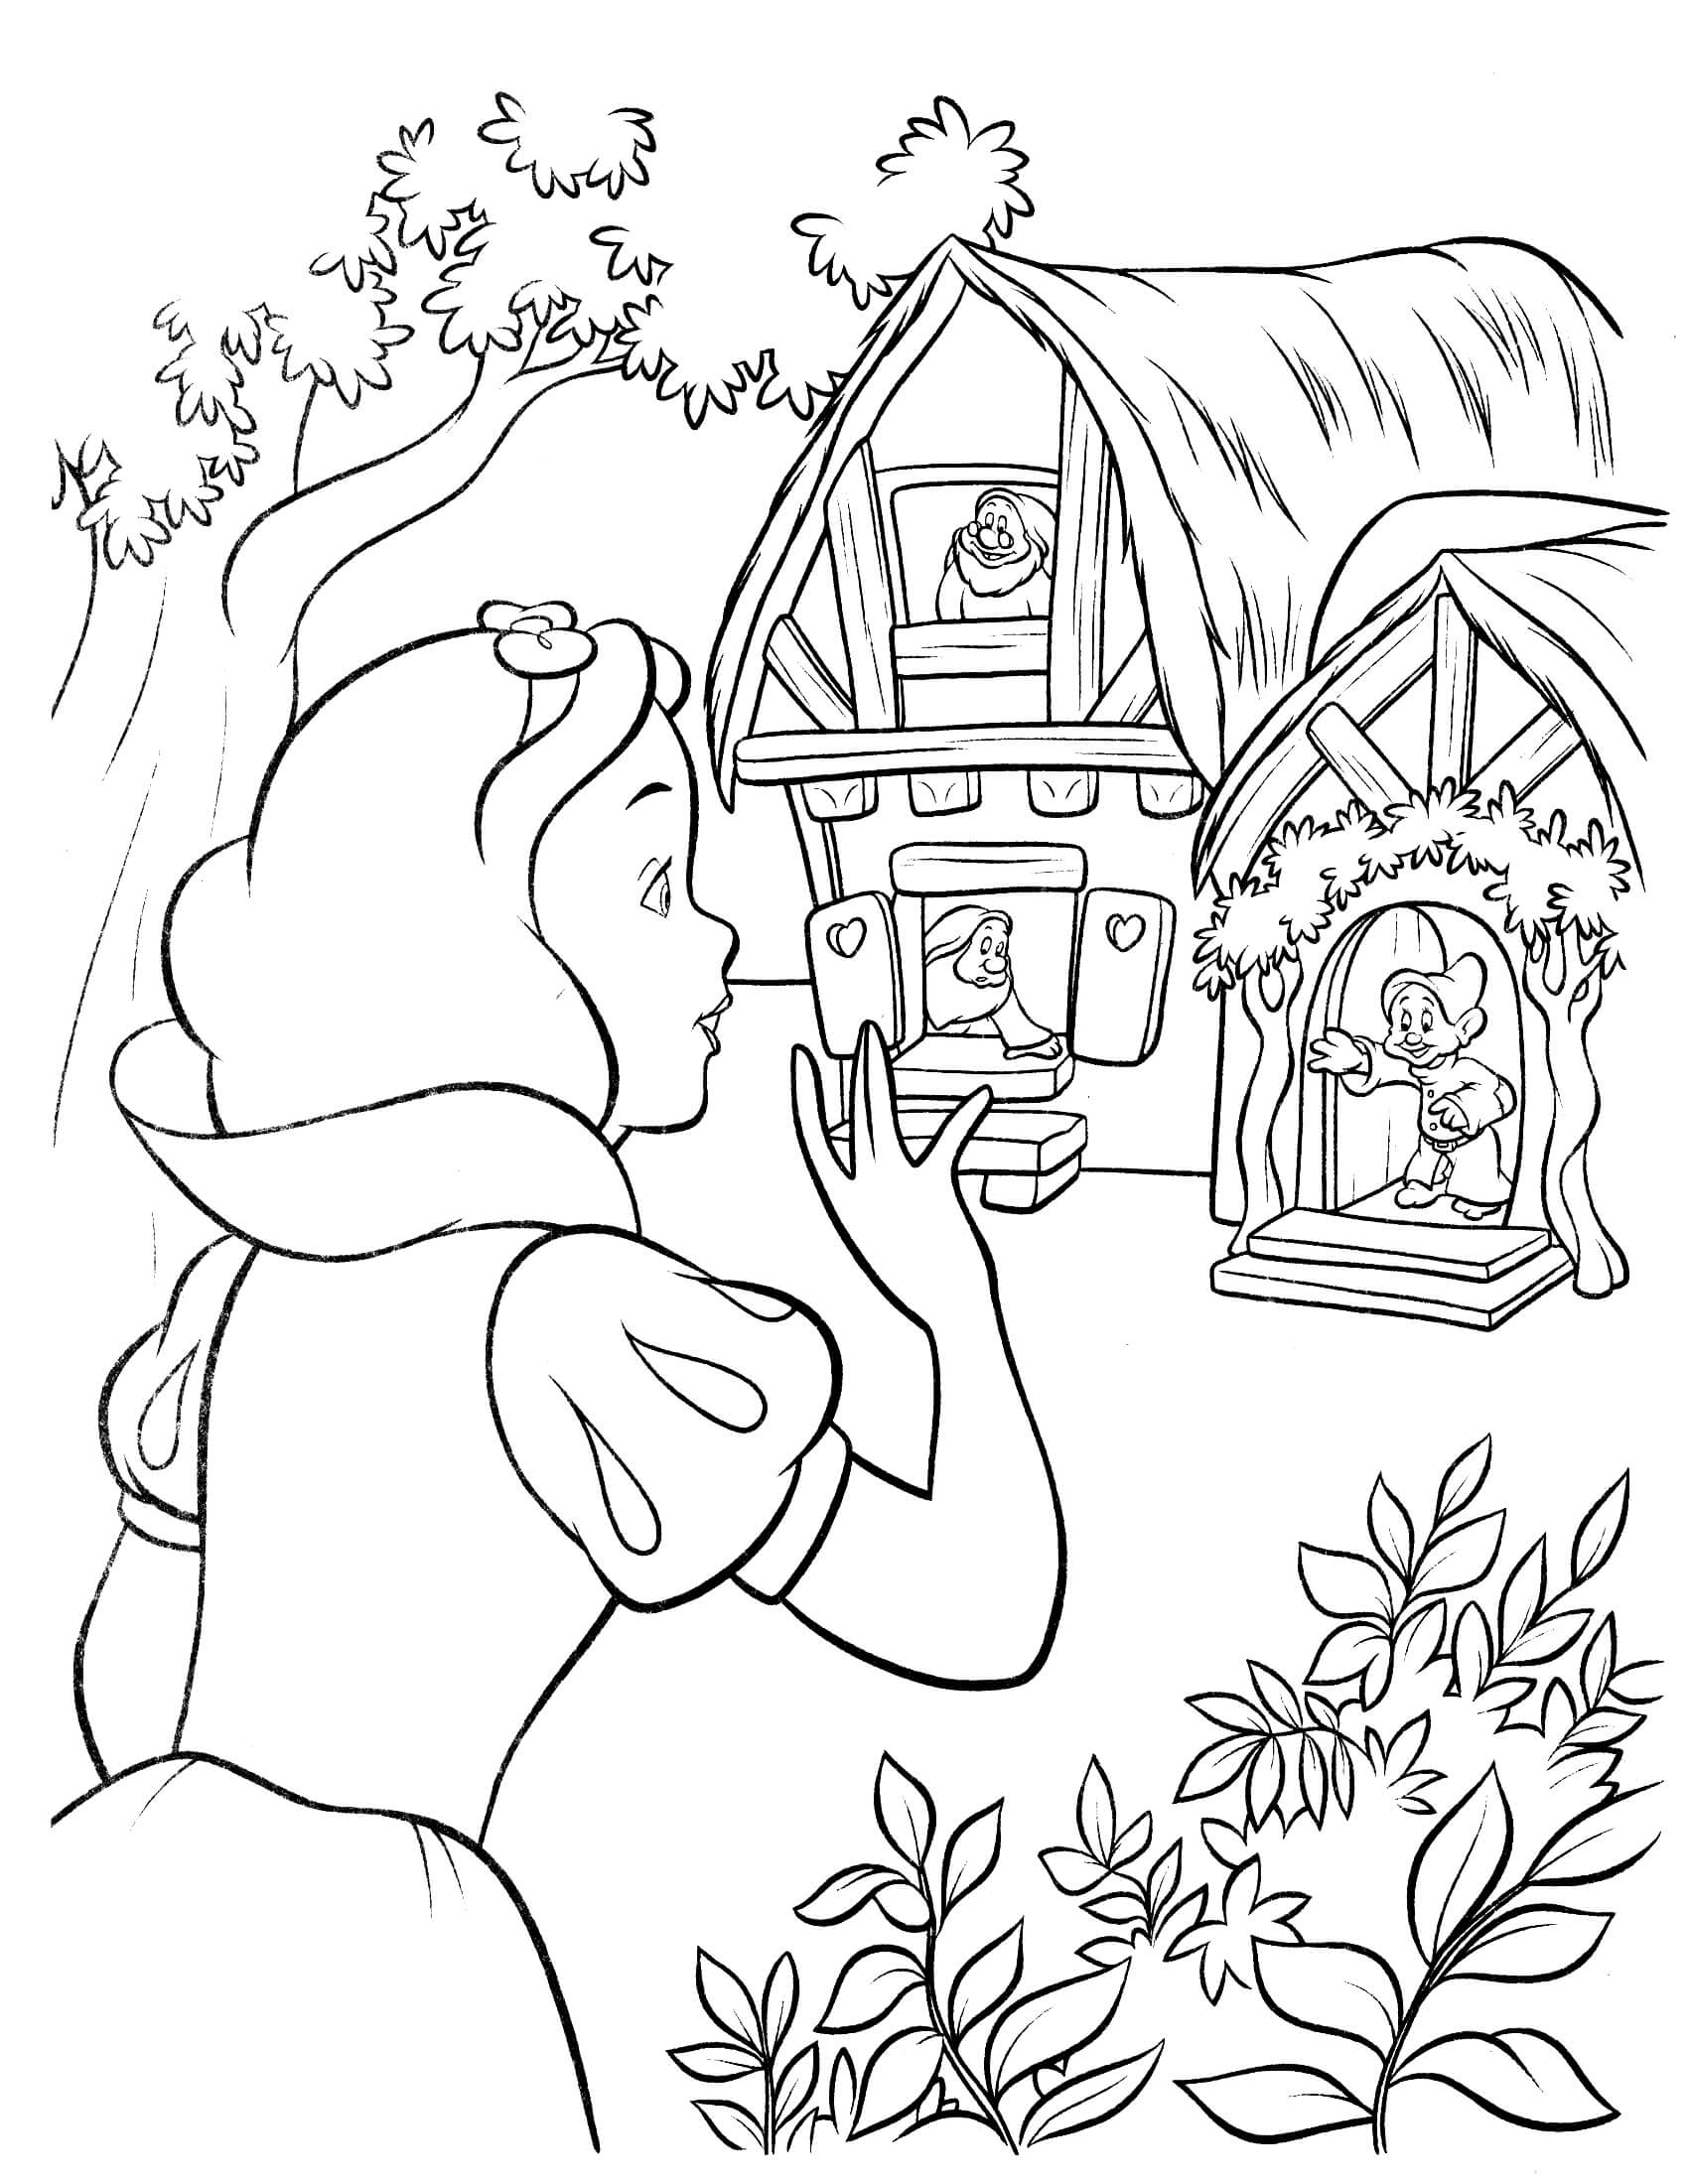 free snow white coloring pages fun learn free worksheets for kid ภาพระบายส สโนว pages coloring snow free white